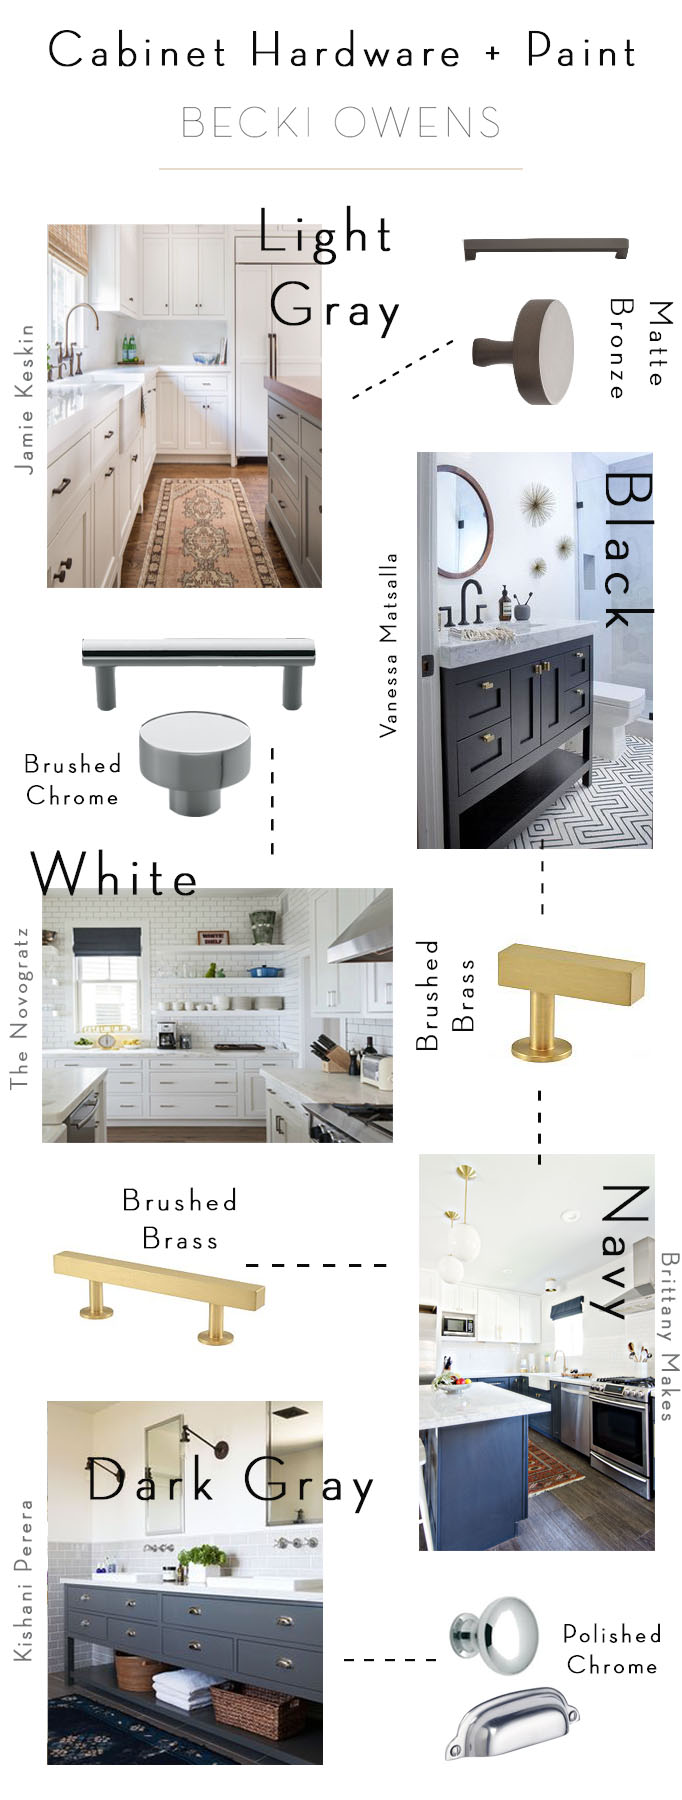 Perfect Pairs Cabinet Hardware And Paint Becki Owens